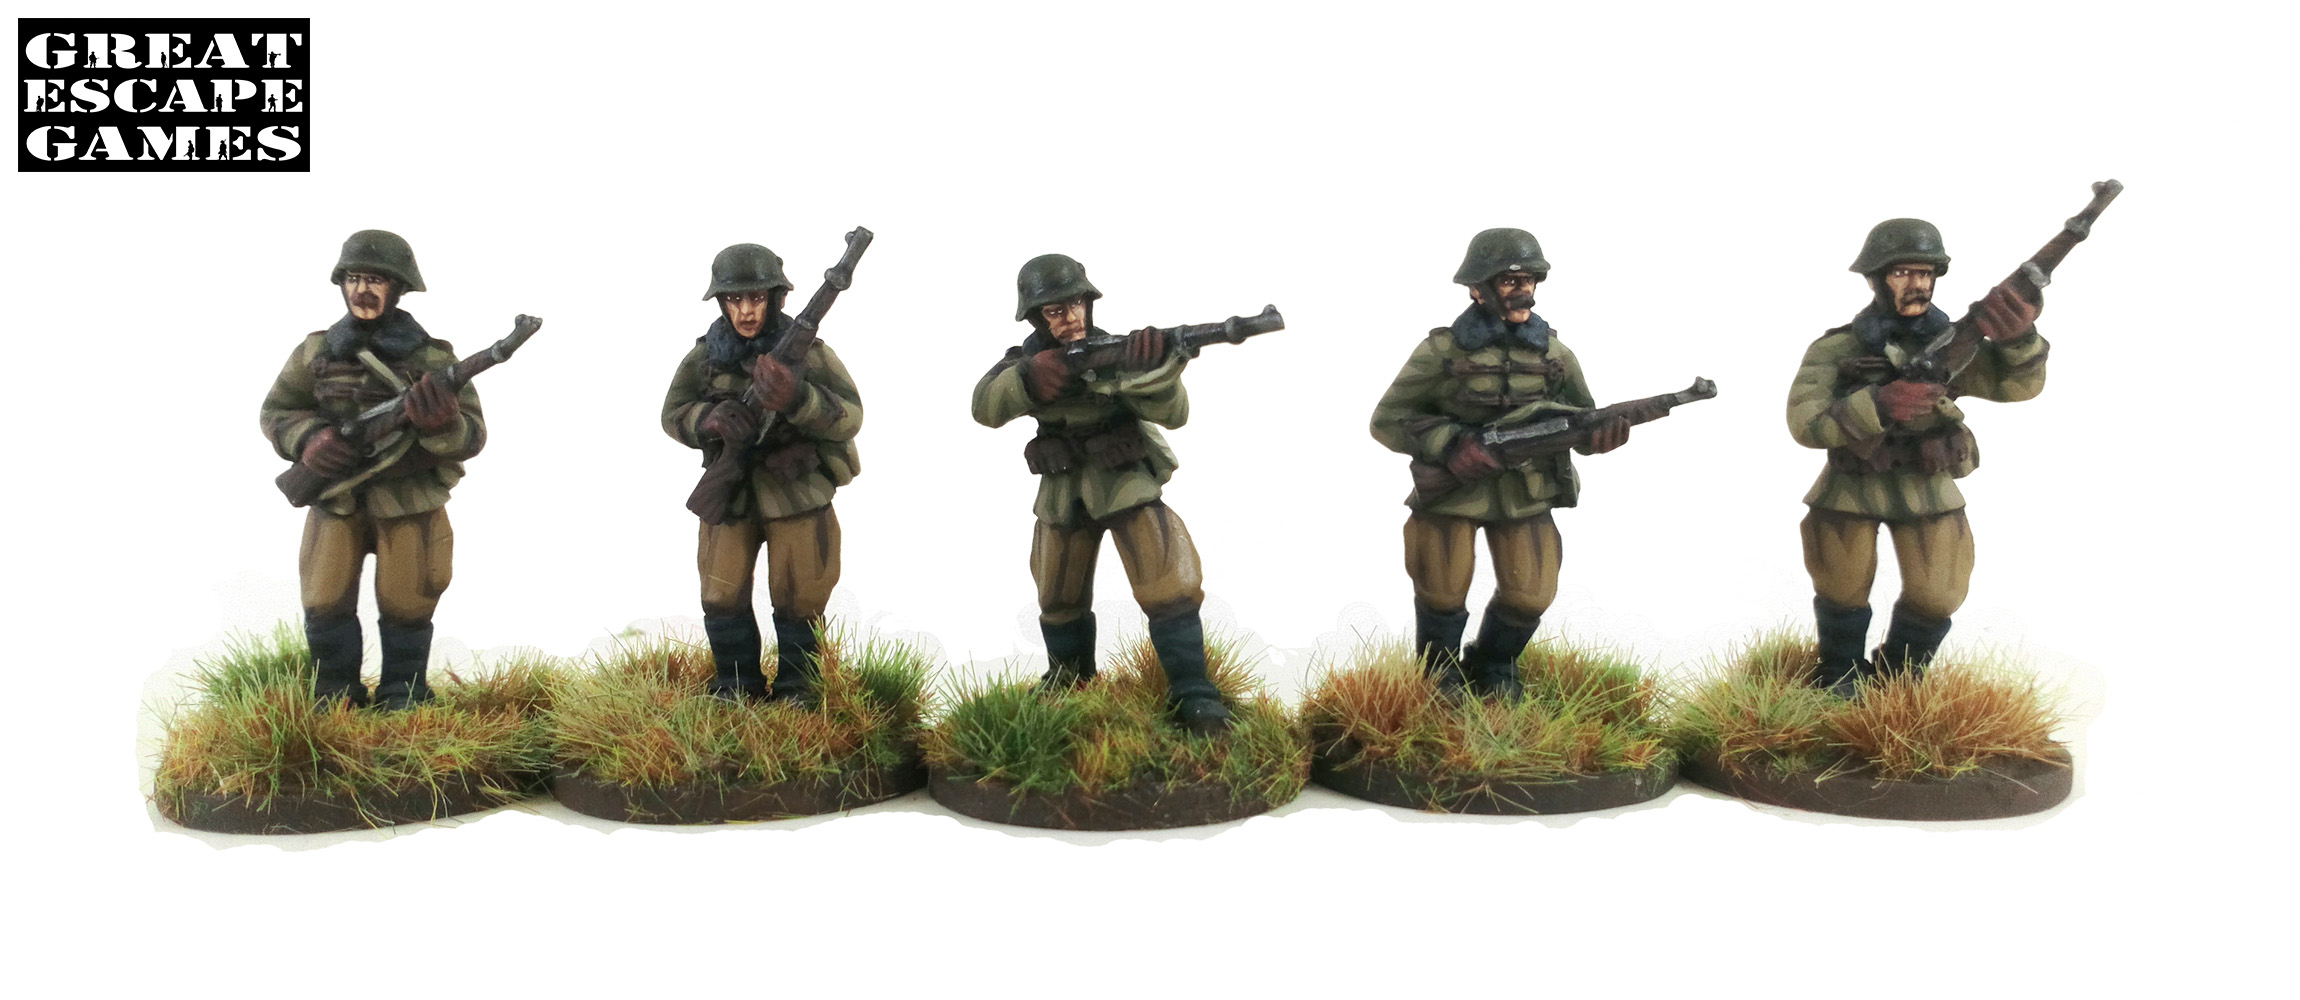 Pledge #2 Őrmester (Sergeant) - Hungarian Dismounted Huszár Troop (Great Escape Games) HUN208